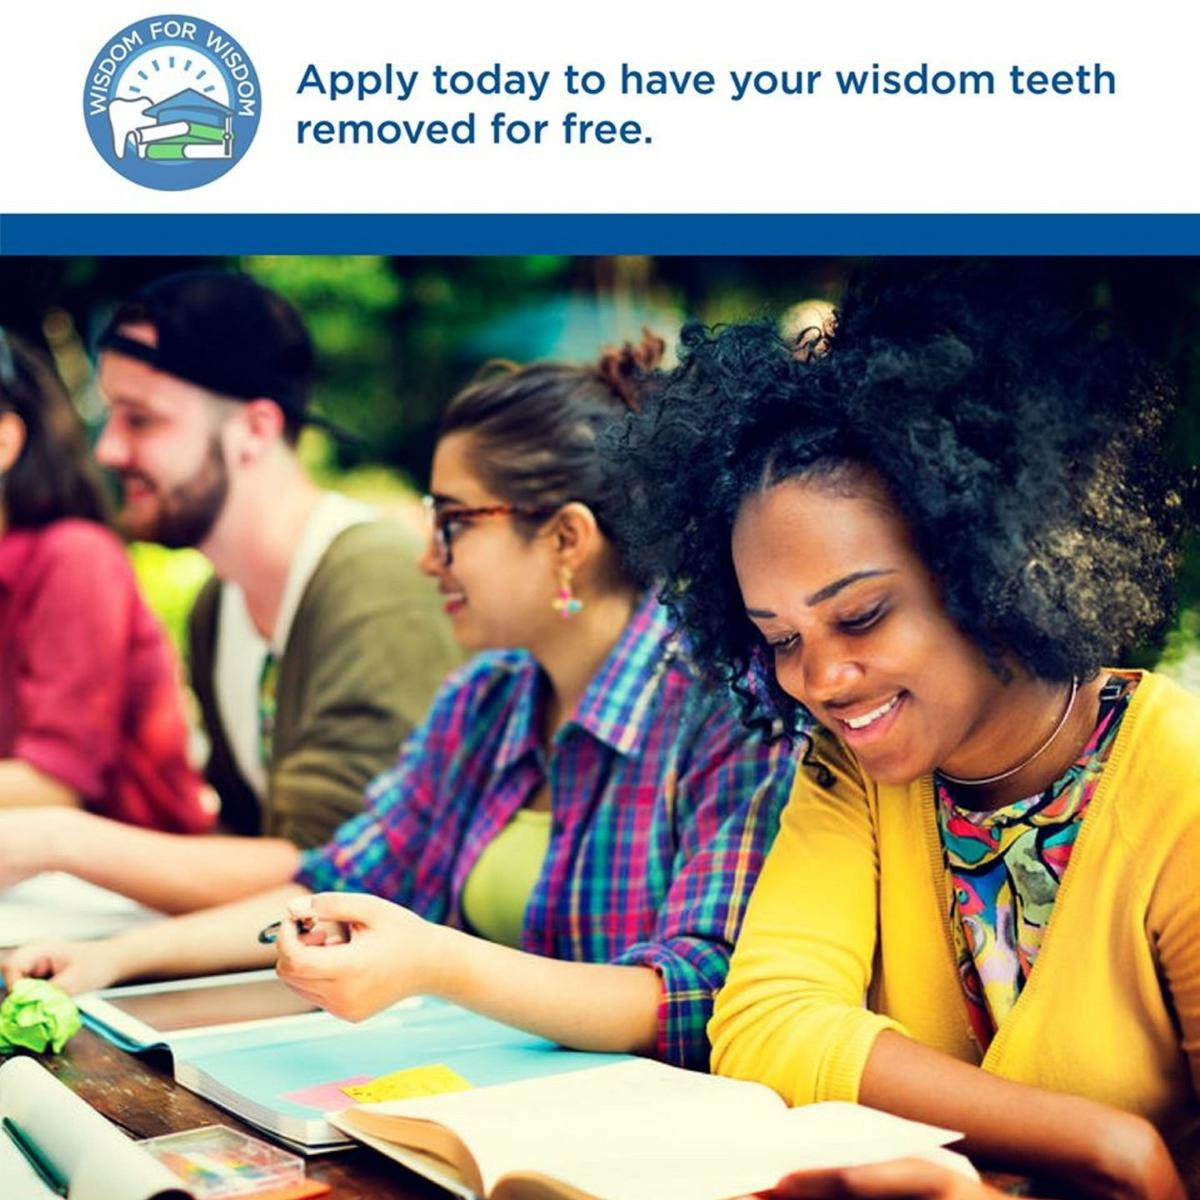 Free wisdom-teeth removal offered to college students